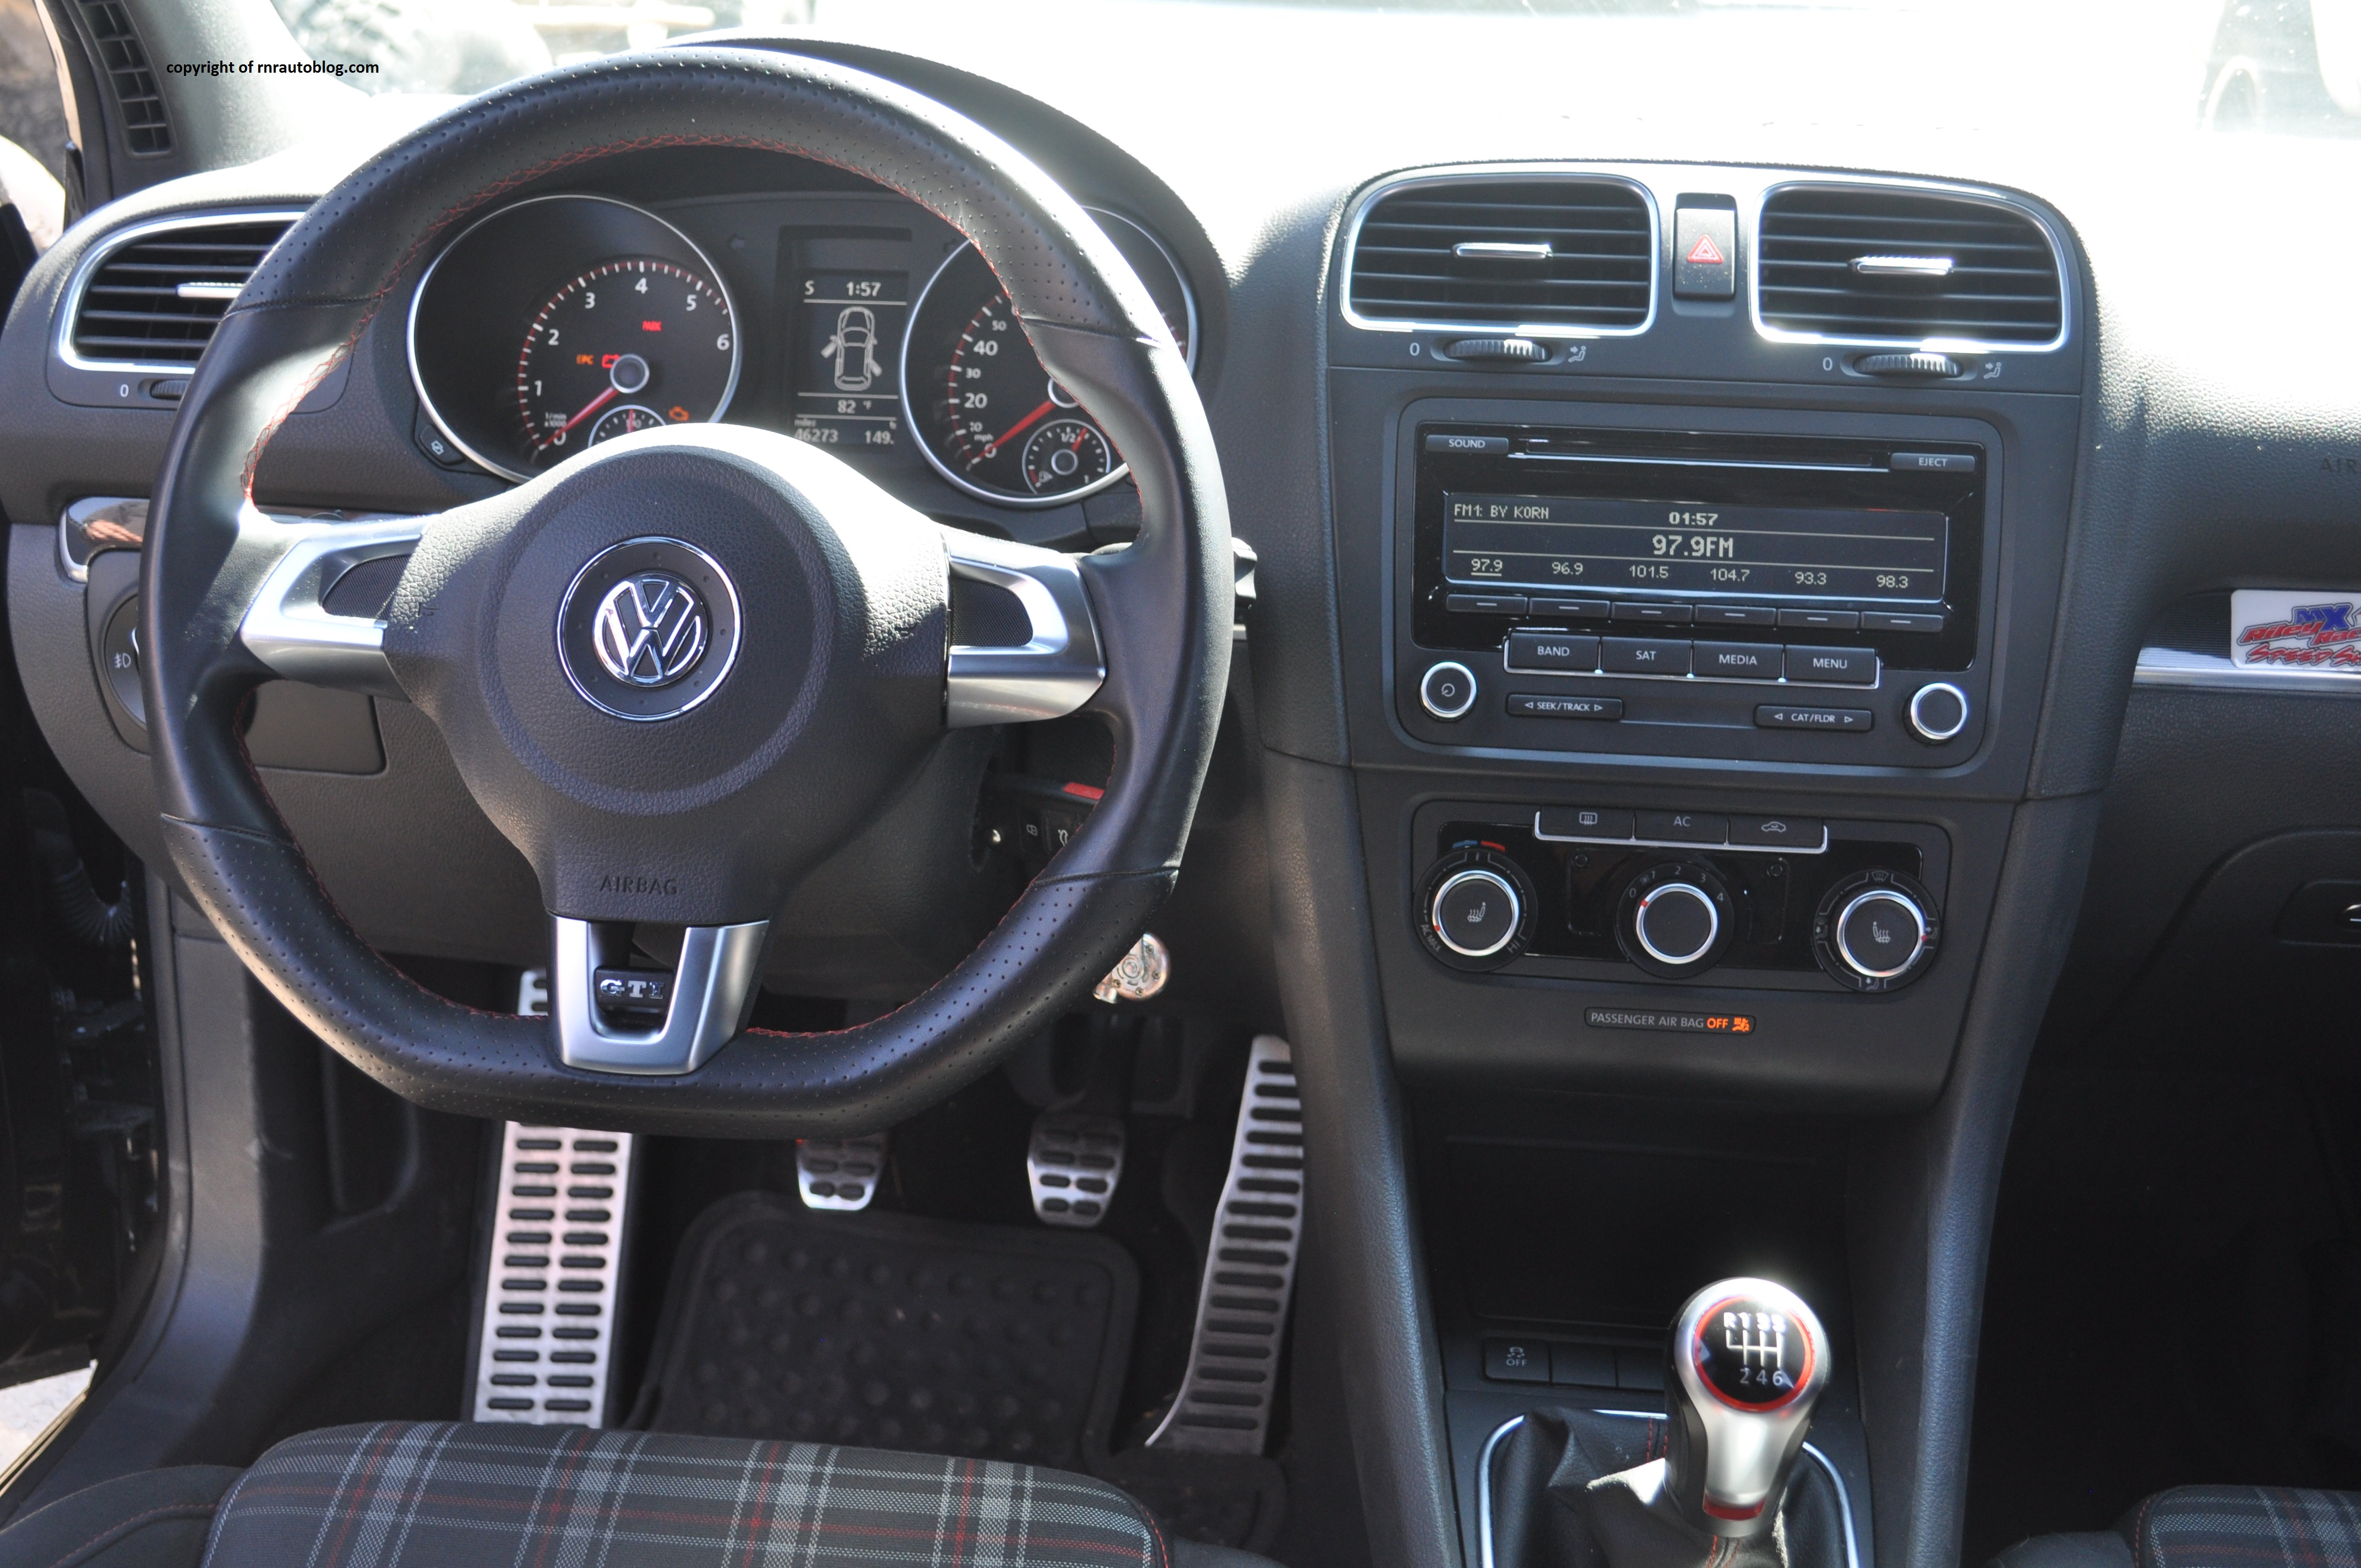 2012 volkswagen golf gti review rnr automotive blog for Interior volkswagen golf